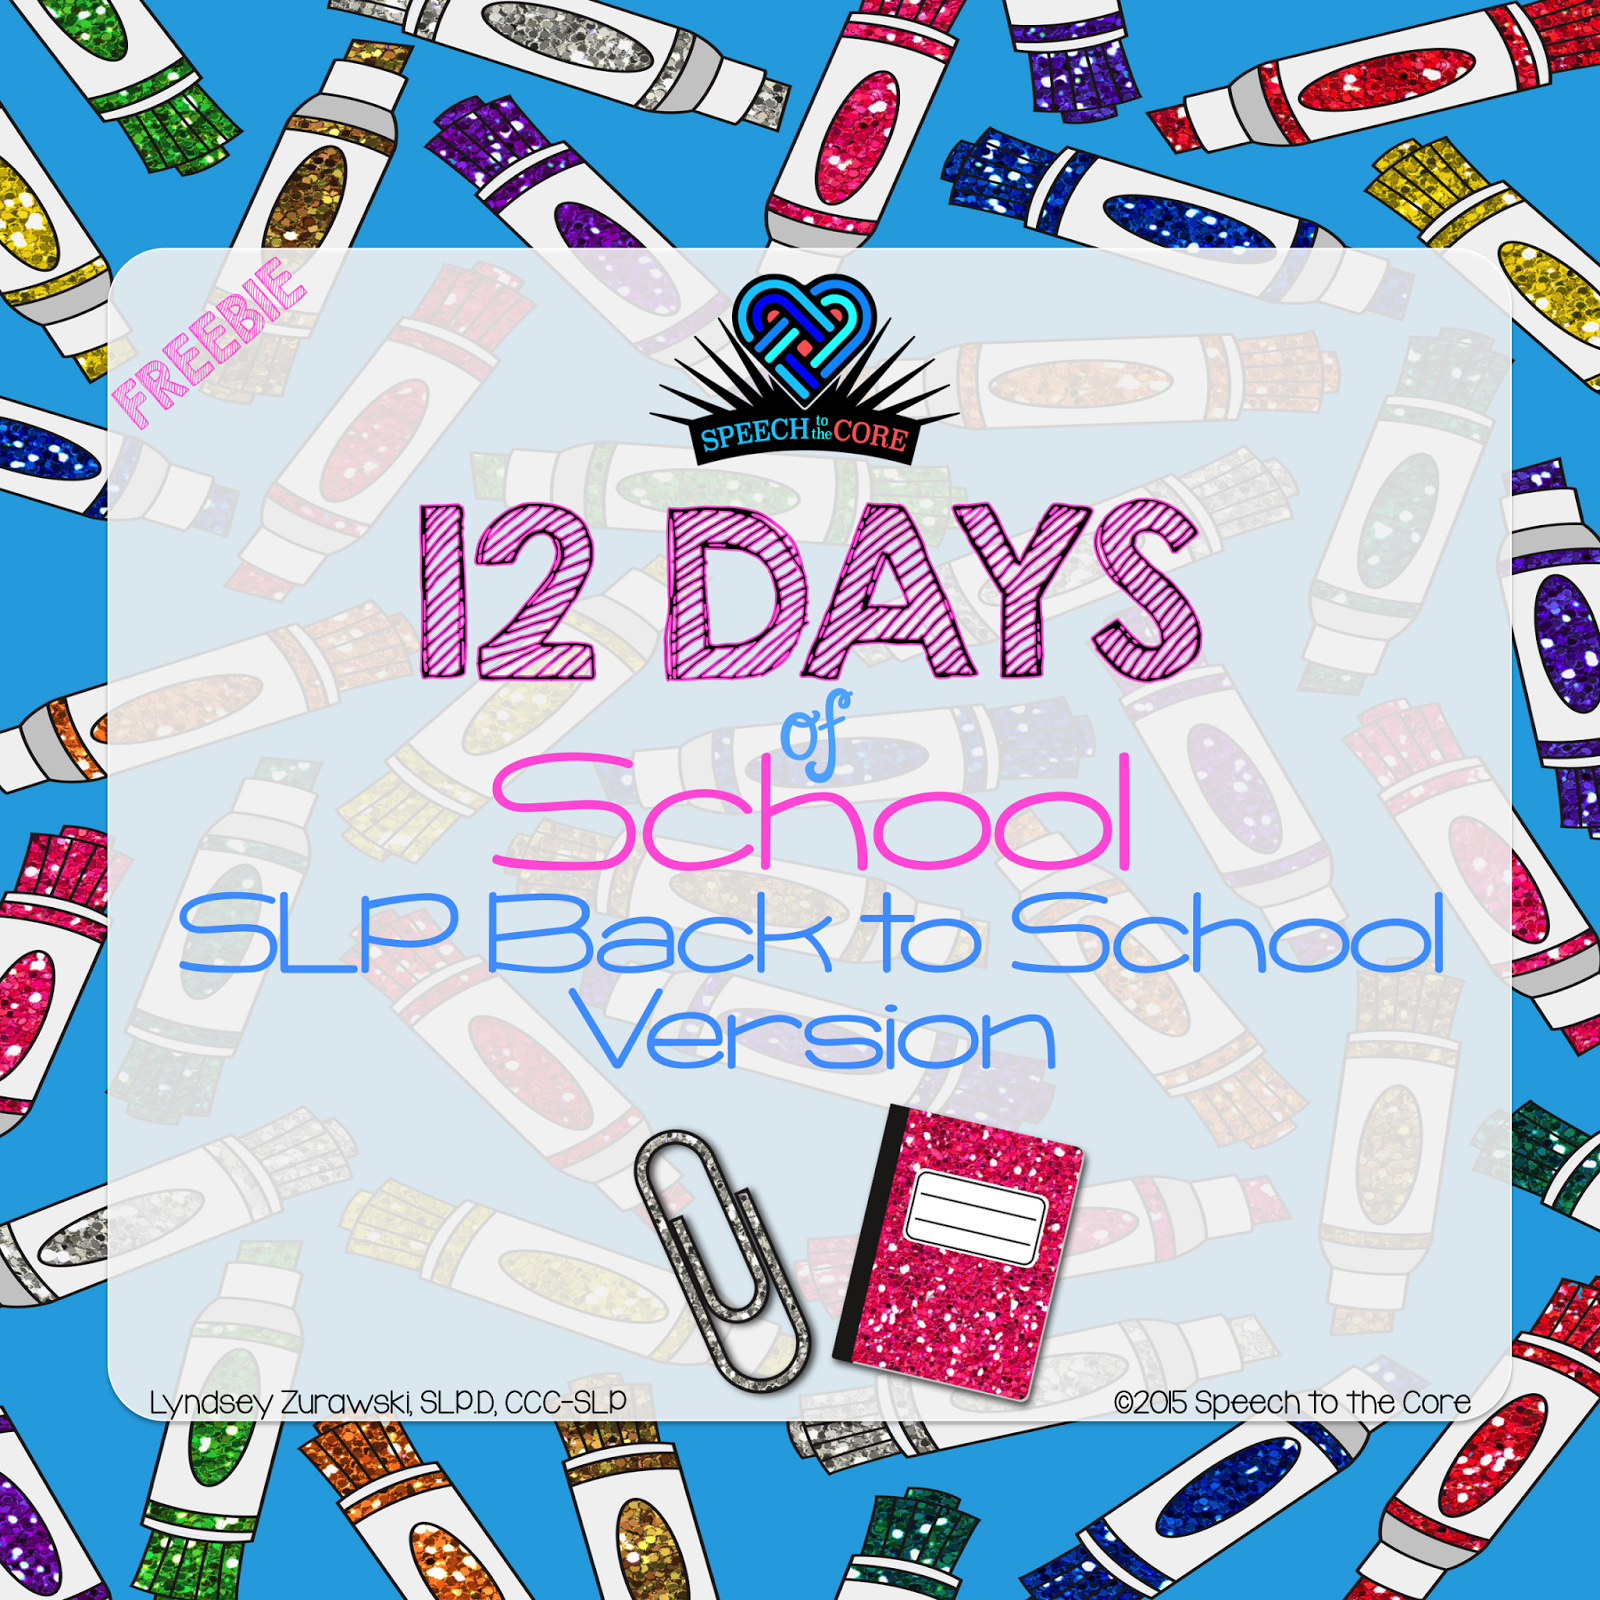 off this fun little parody of the 12 days of christmas with a school based slp spin on it for back to school its in my tpt shop as a free download